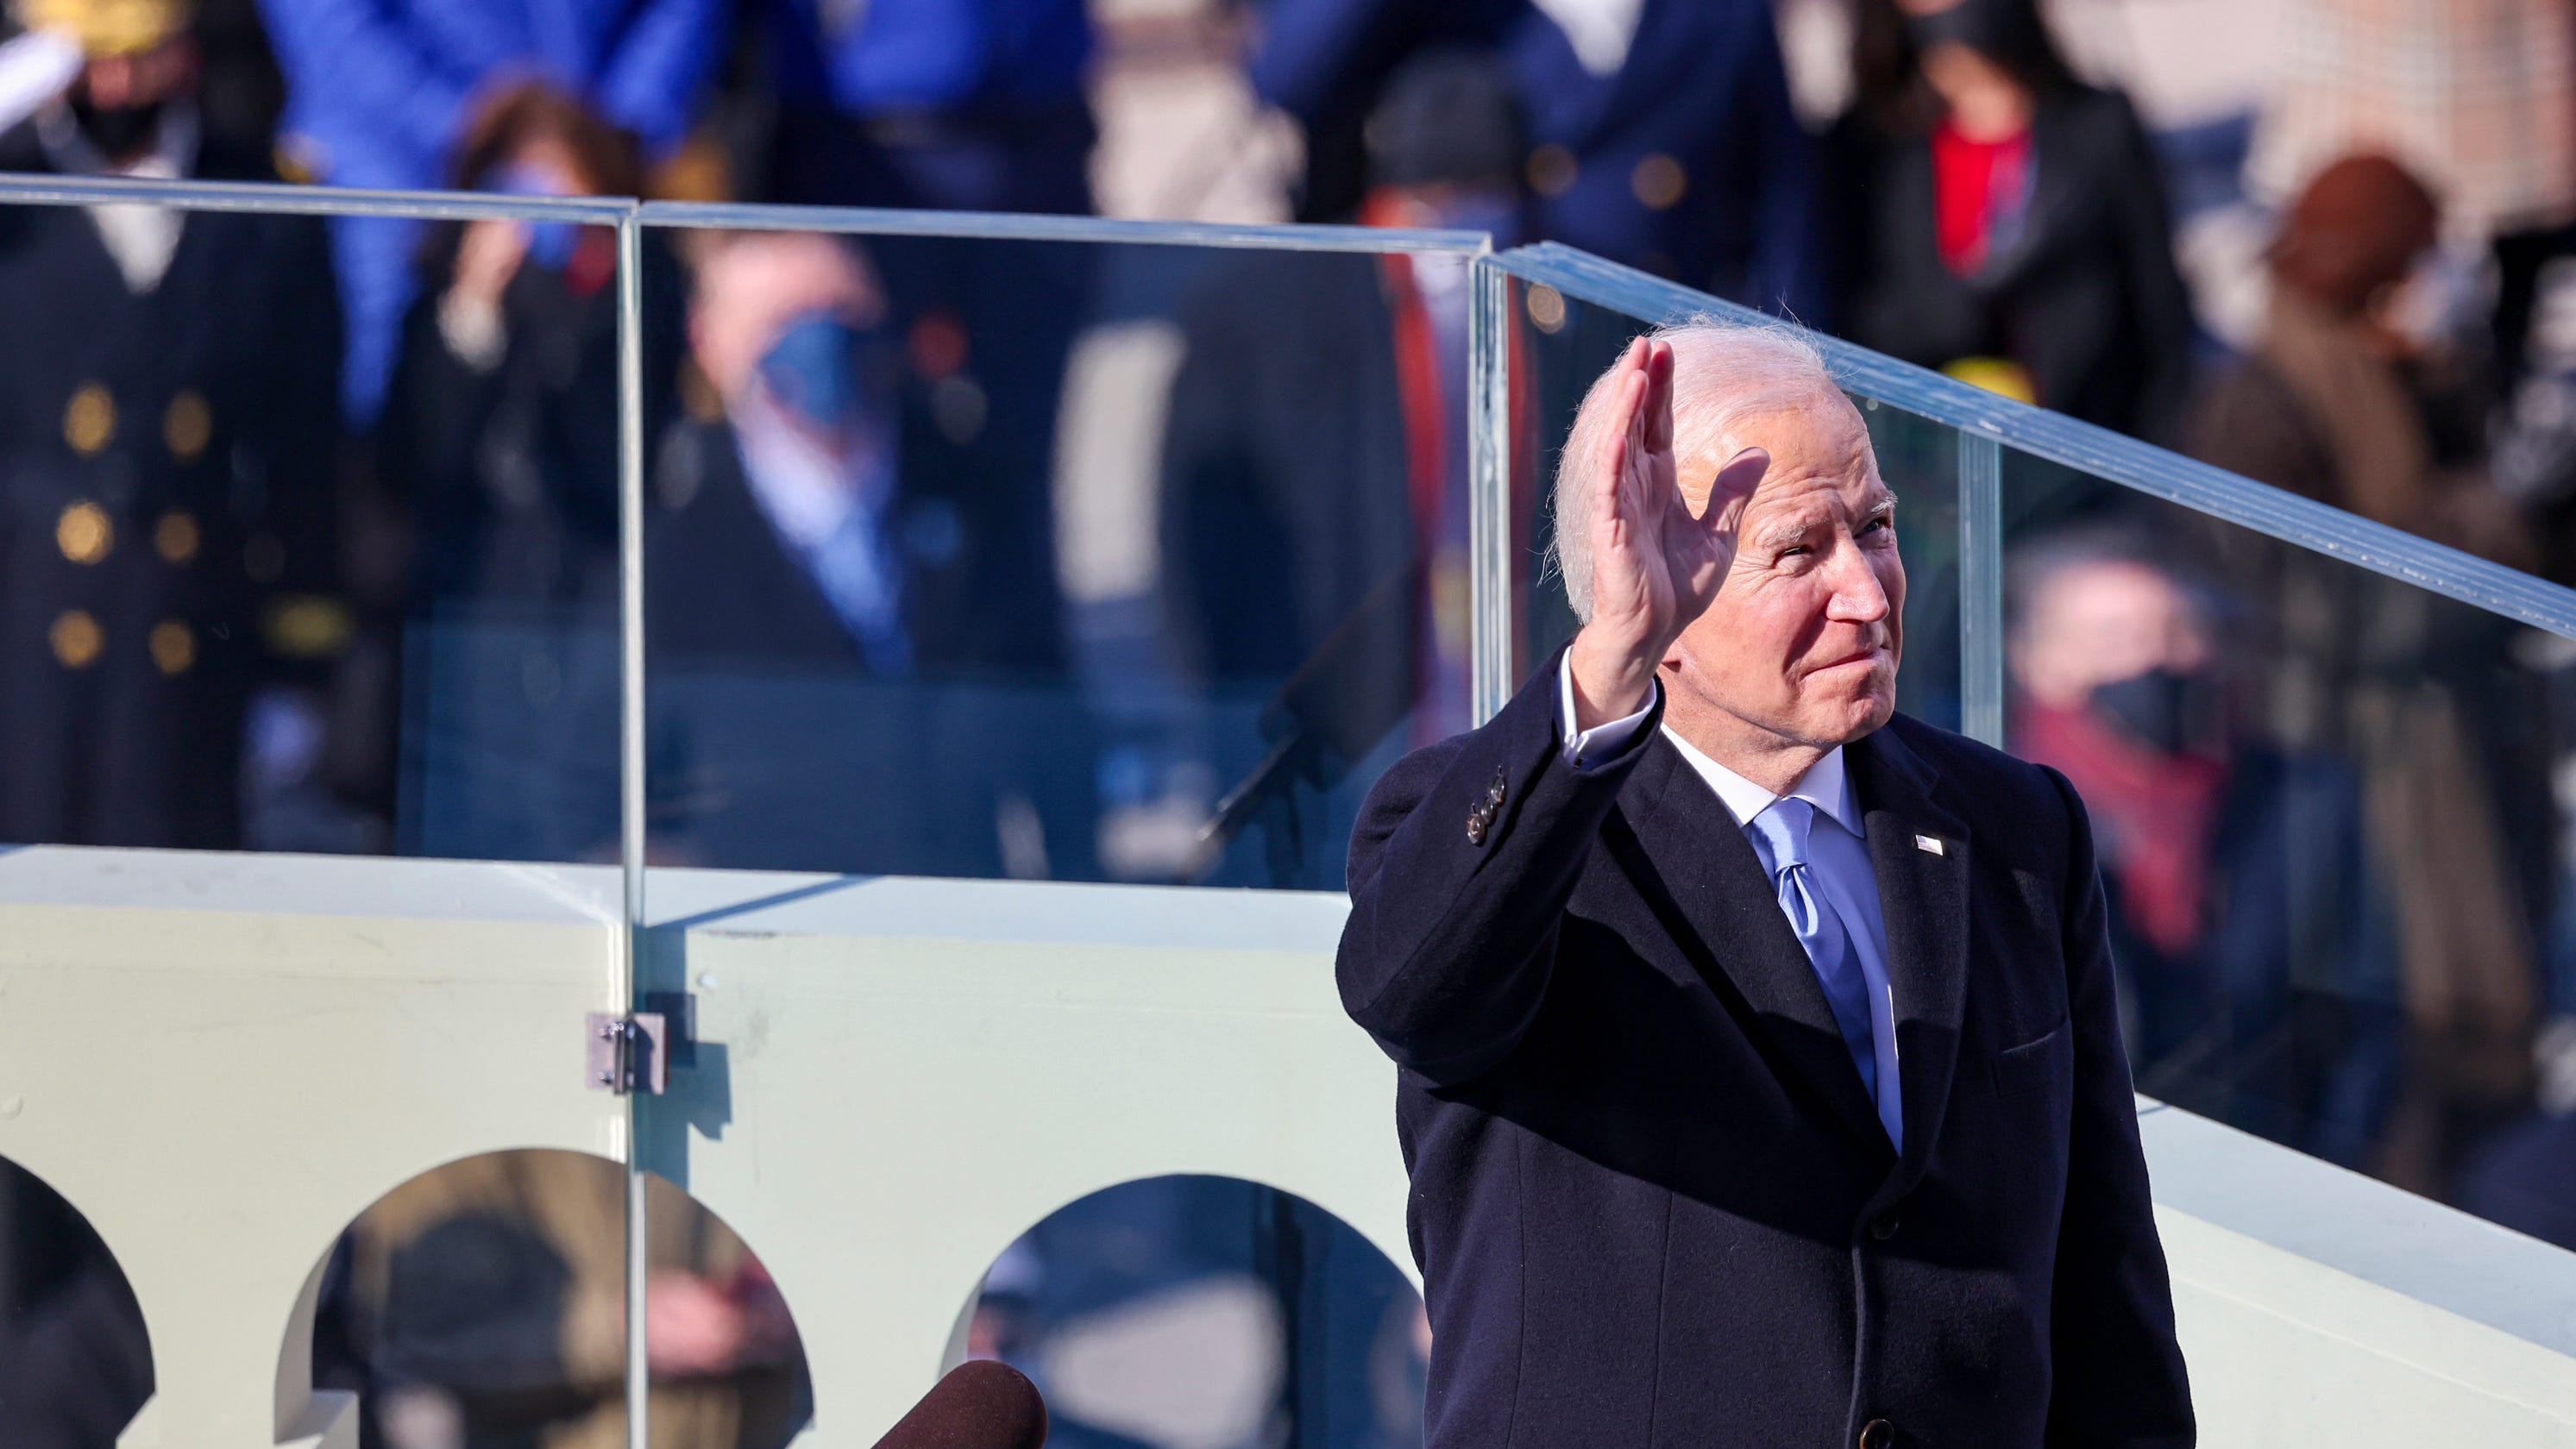 At inaugural, Biden hit right tone with call to work together for common good: Reader views